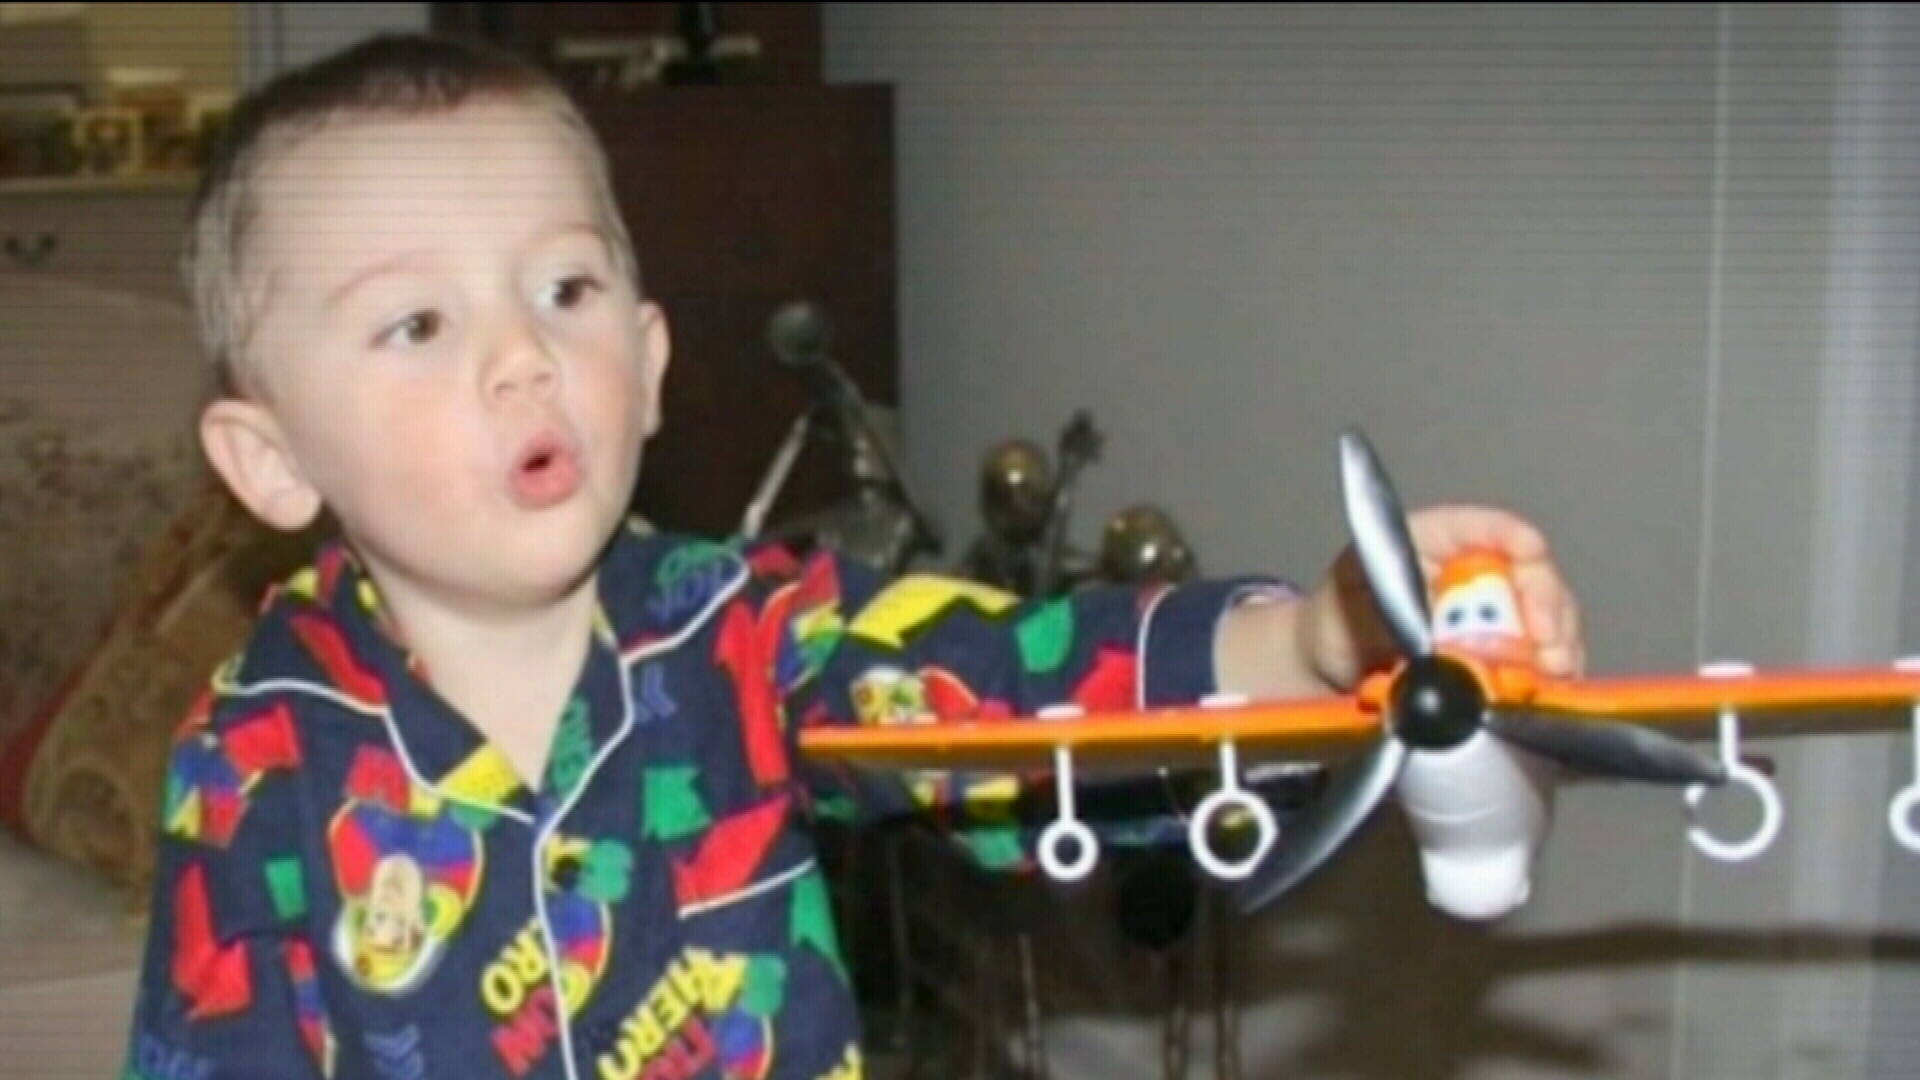 Inquest into William Tyrell disappearance opens